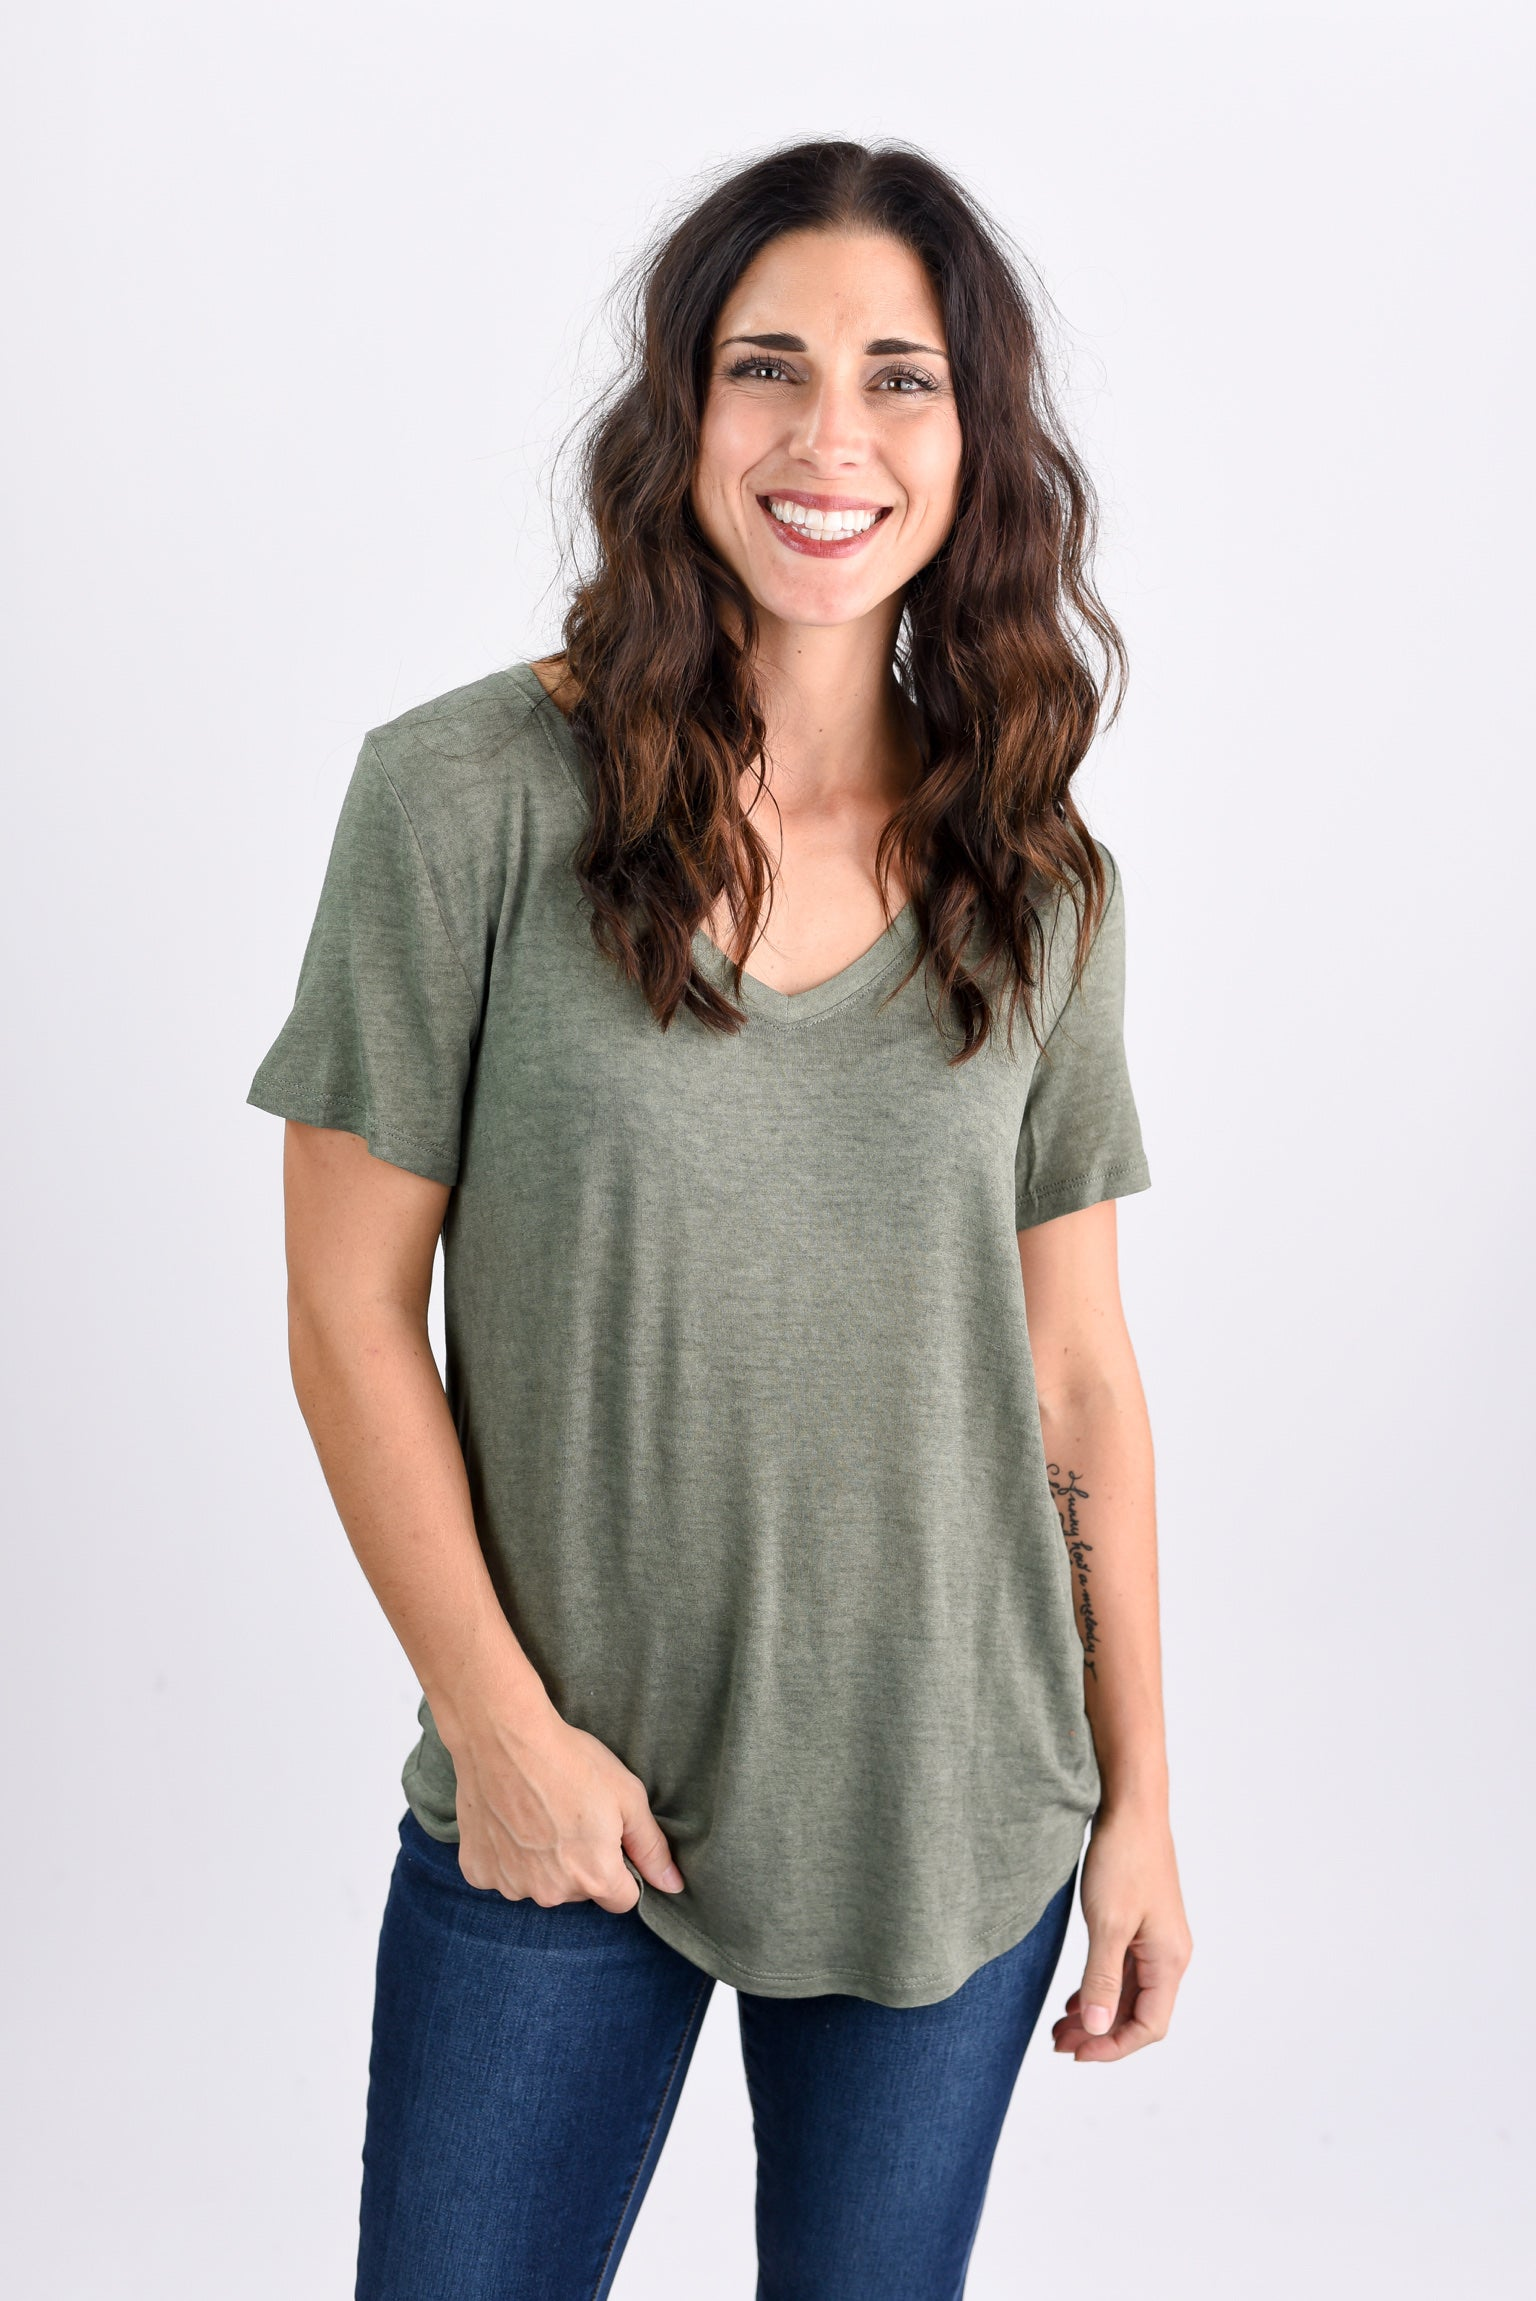 Just My Type Olive V-neck Lightweight Tee